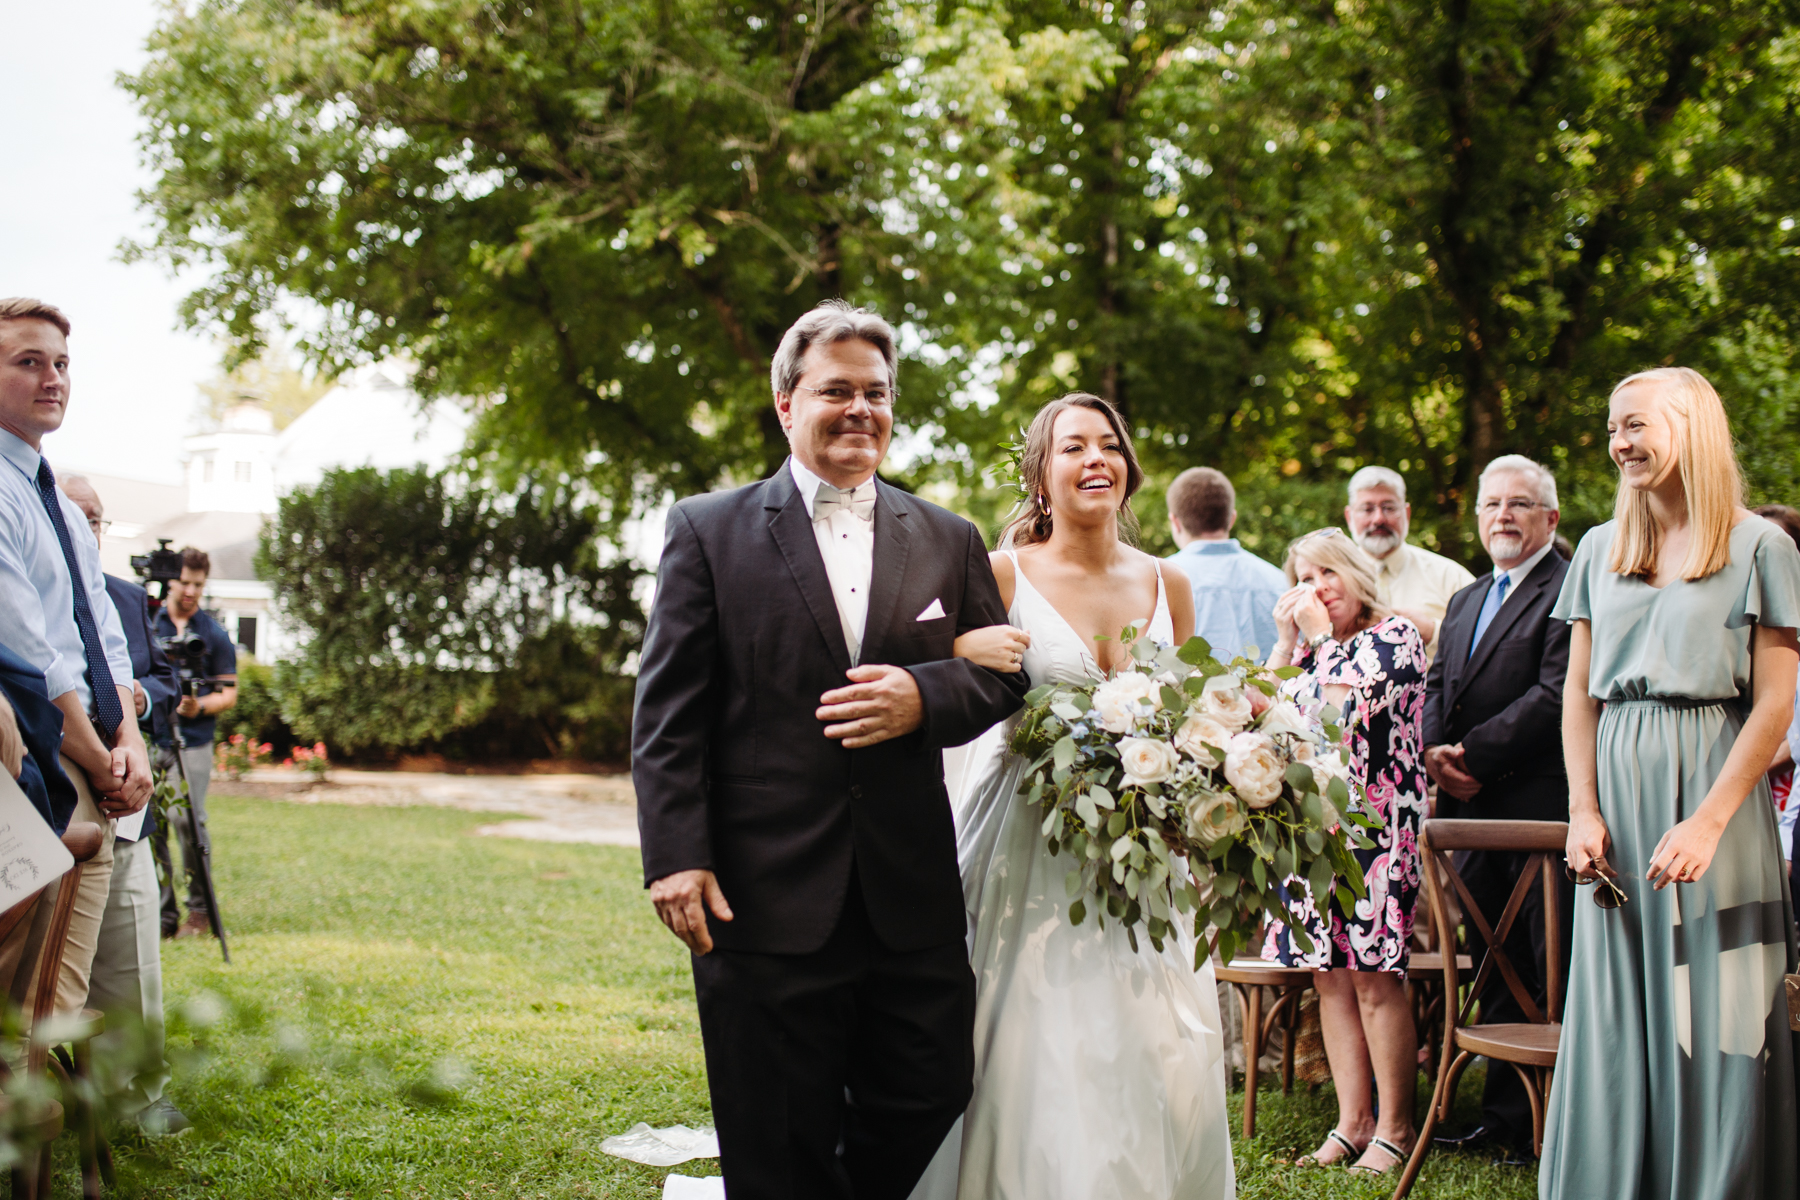 Father and bride walking down the aisle at a Sunny summer wedding at Dara's Garden in Knoxville, Tennessee